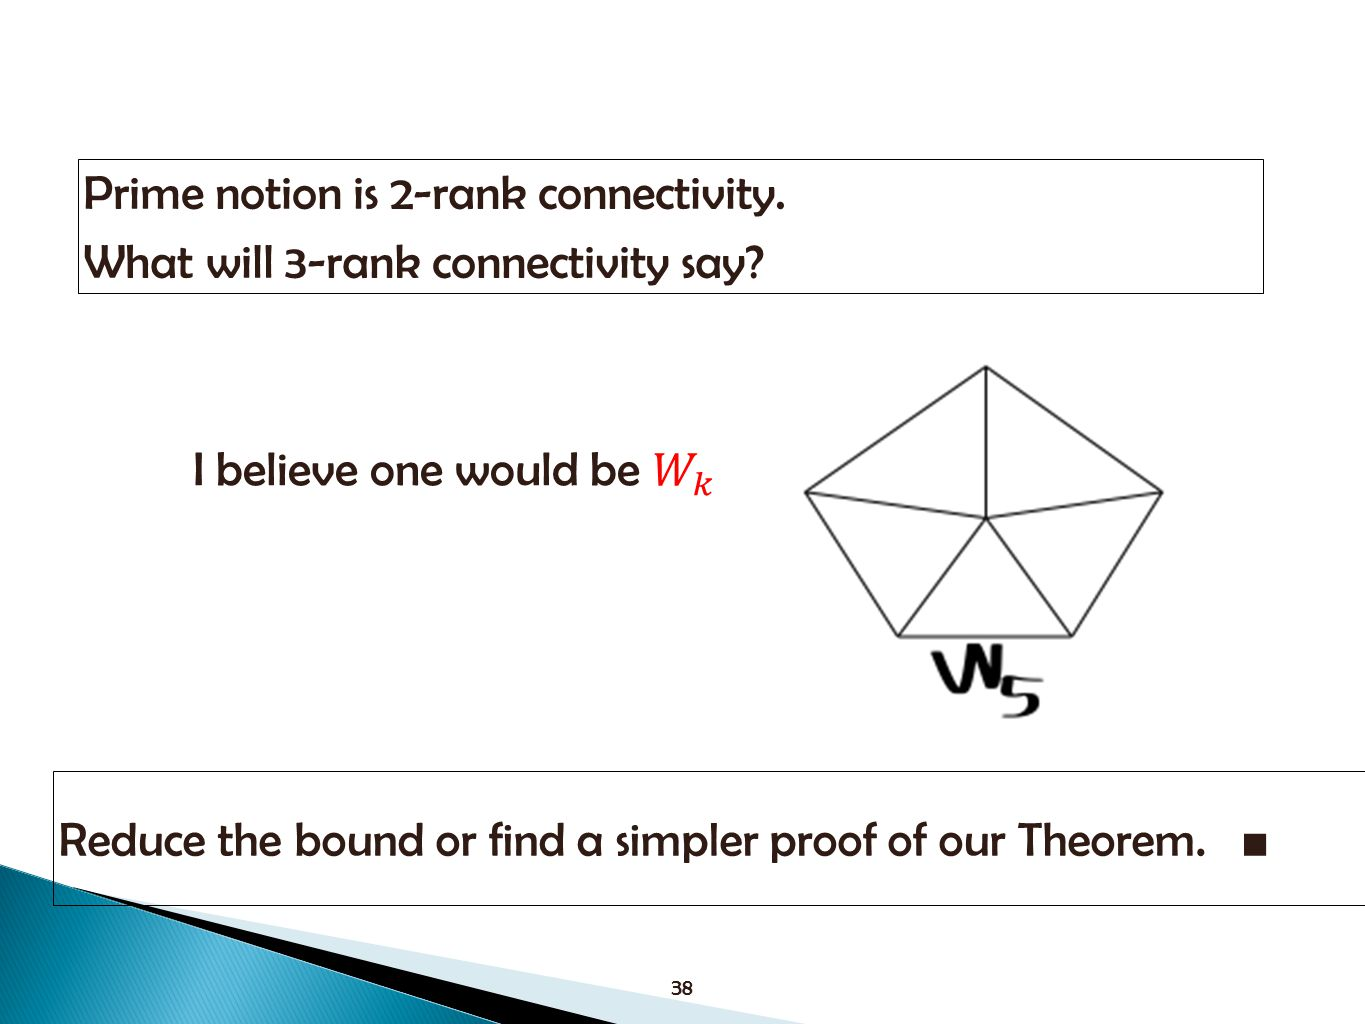 38 Prime notion is 2-rank connectivity. What will 3-rank connectivity say? Reduce the bound or find a simpler proof of our Theorem. ■